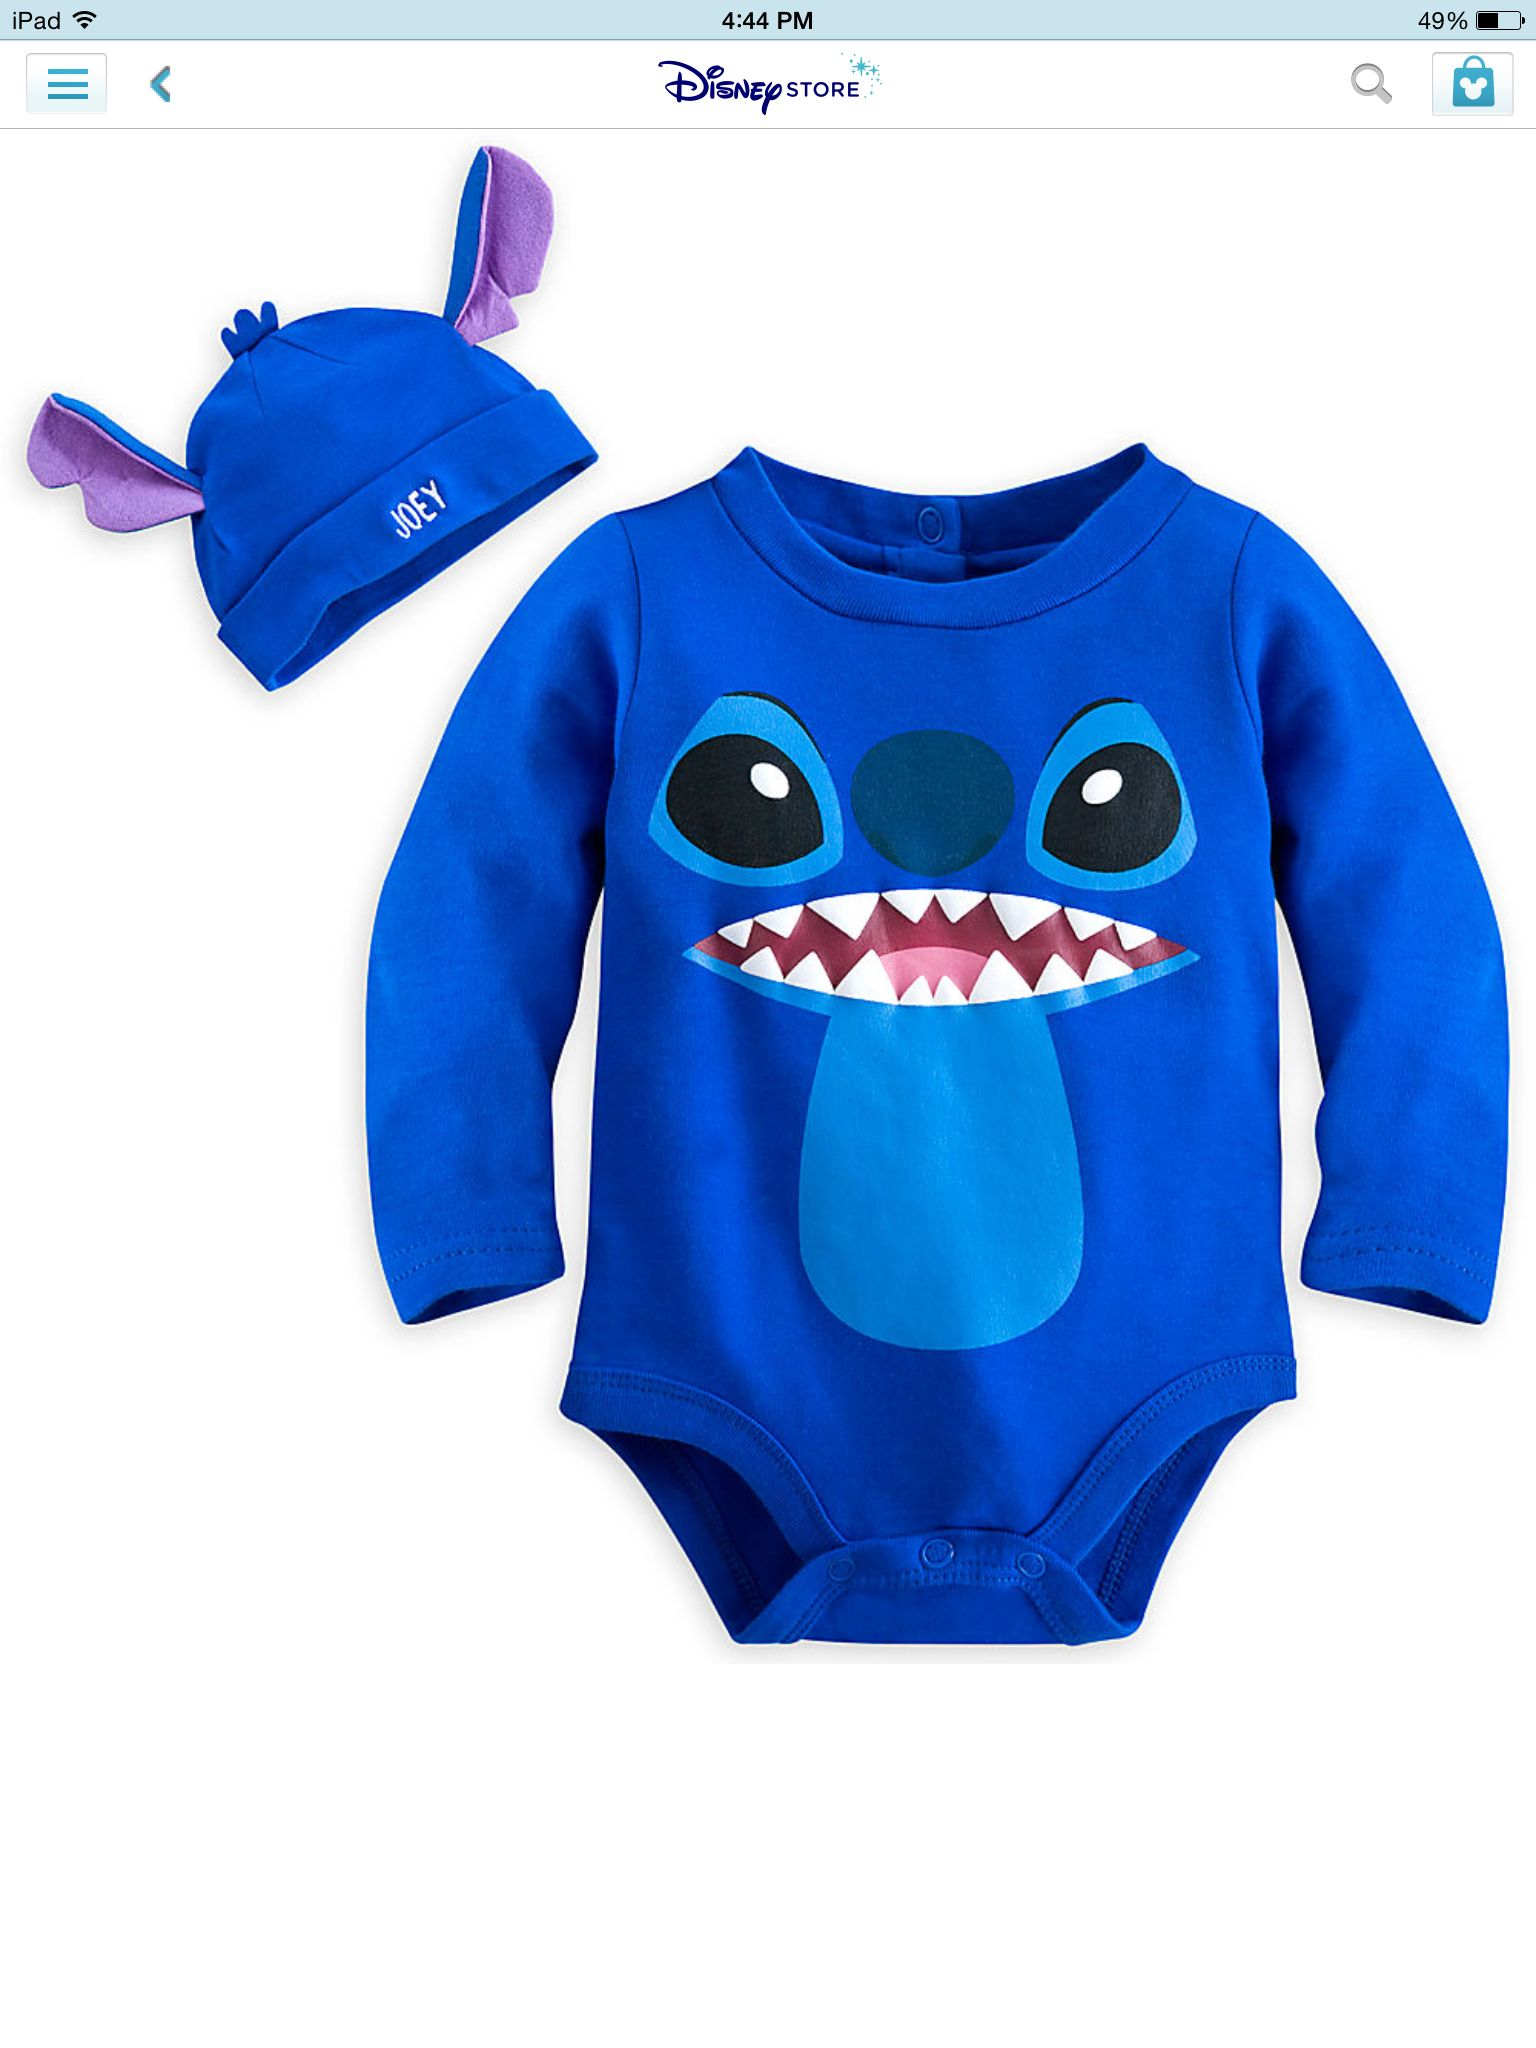 0725bcaa8a2 Personalized stitch clothing for baby. Disneystore.com